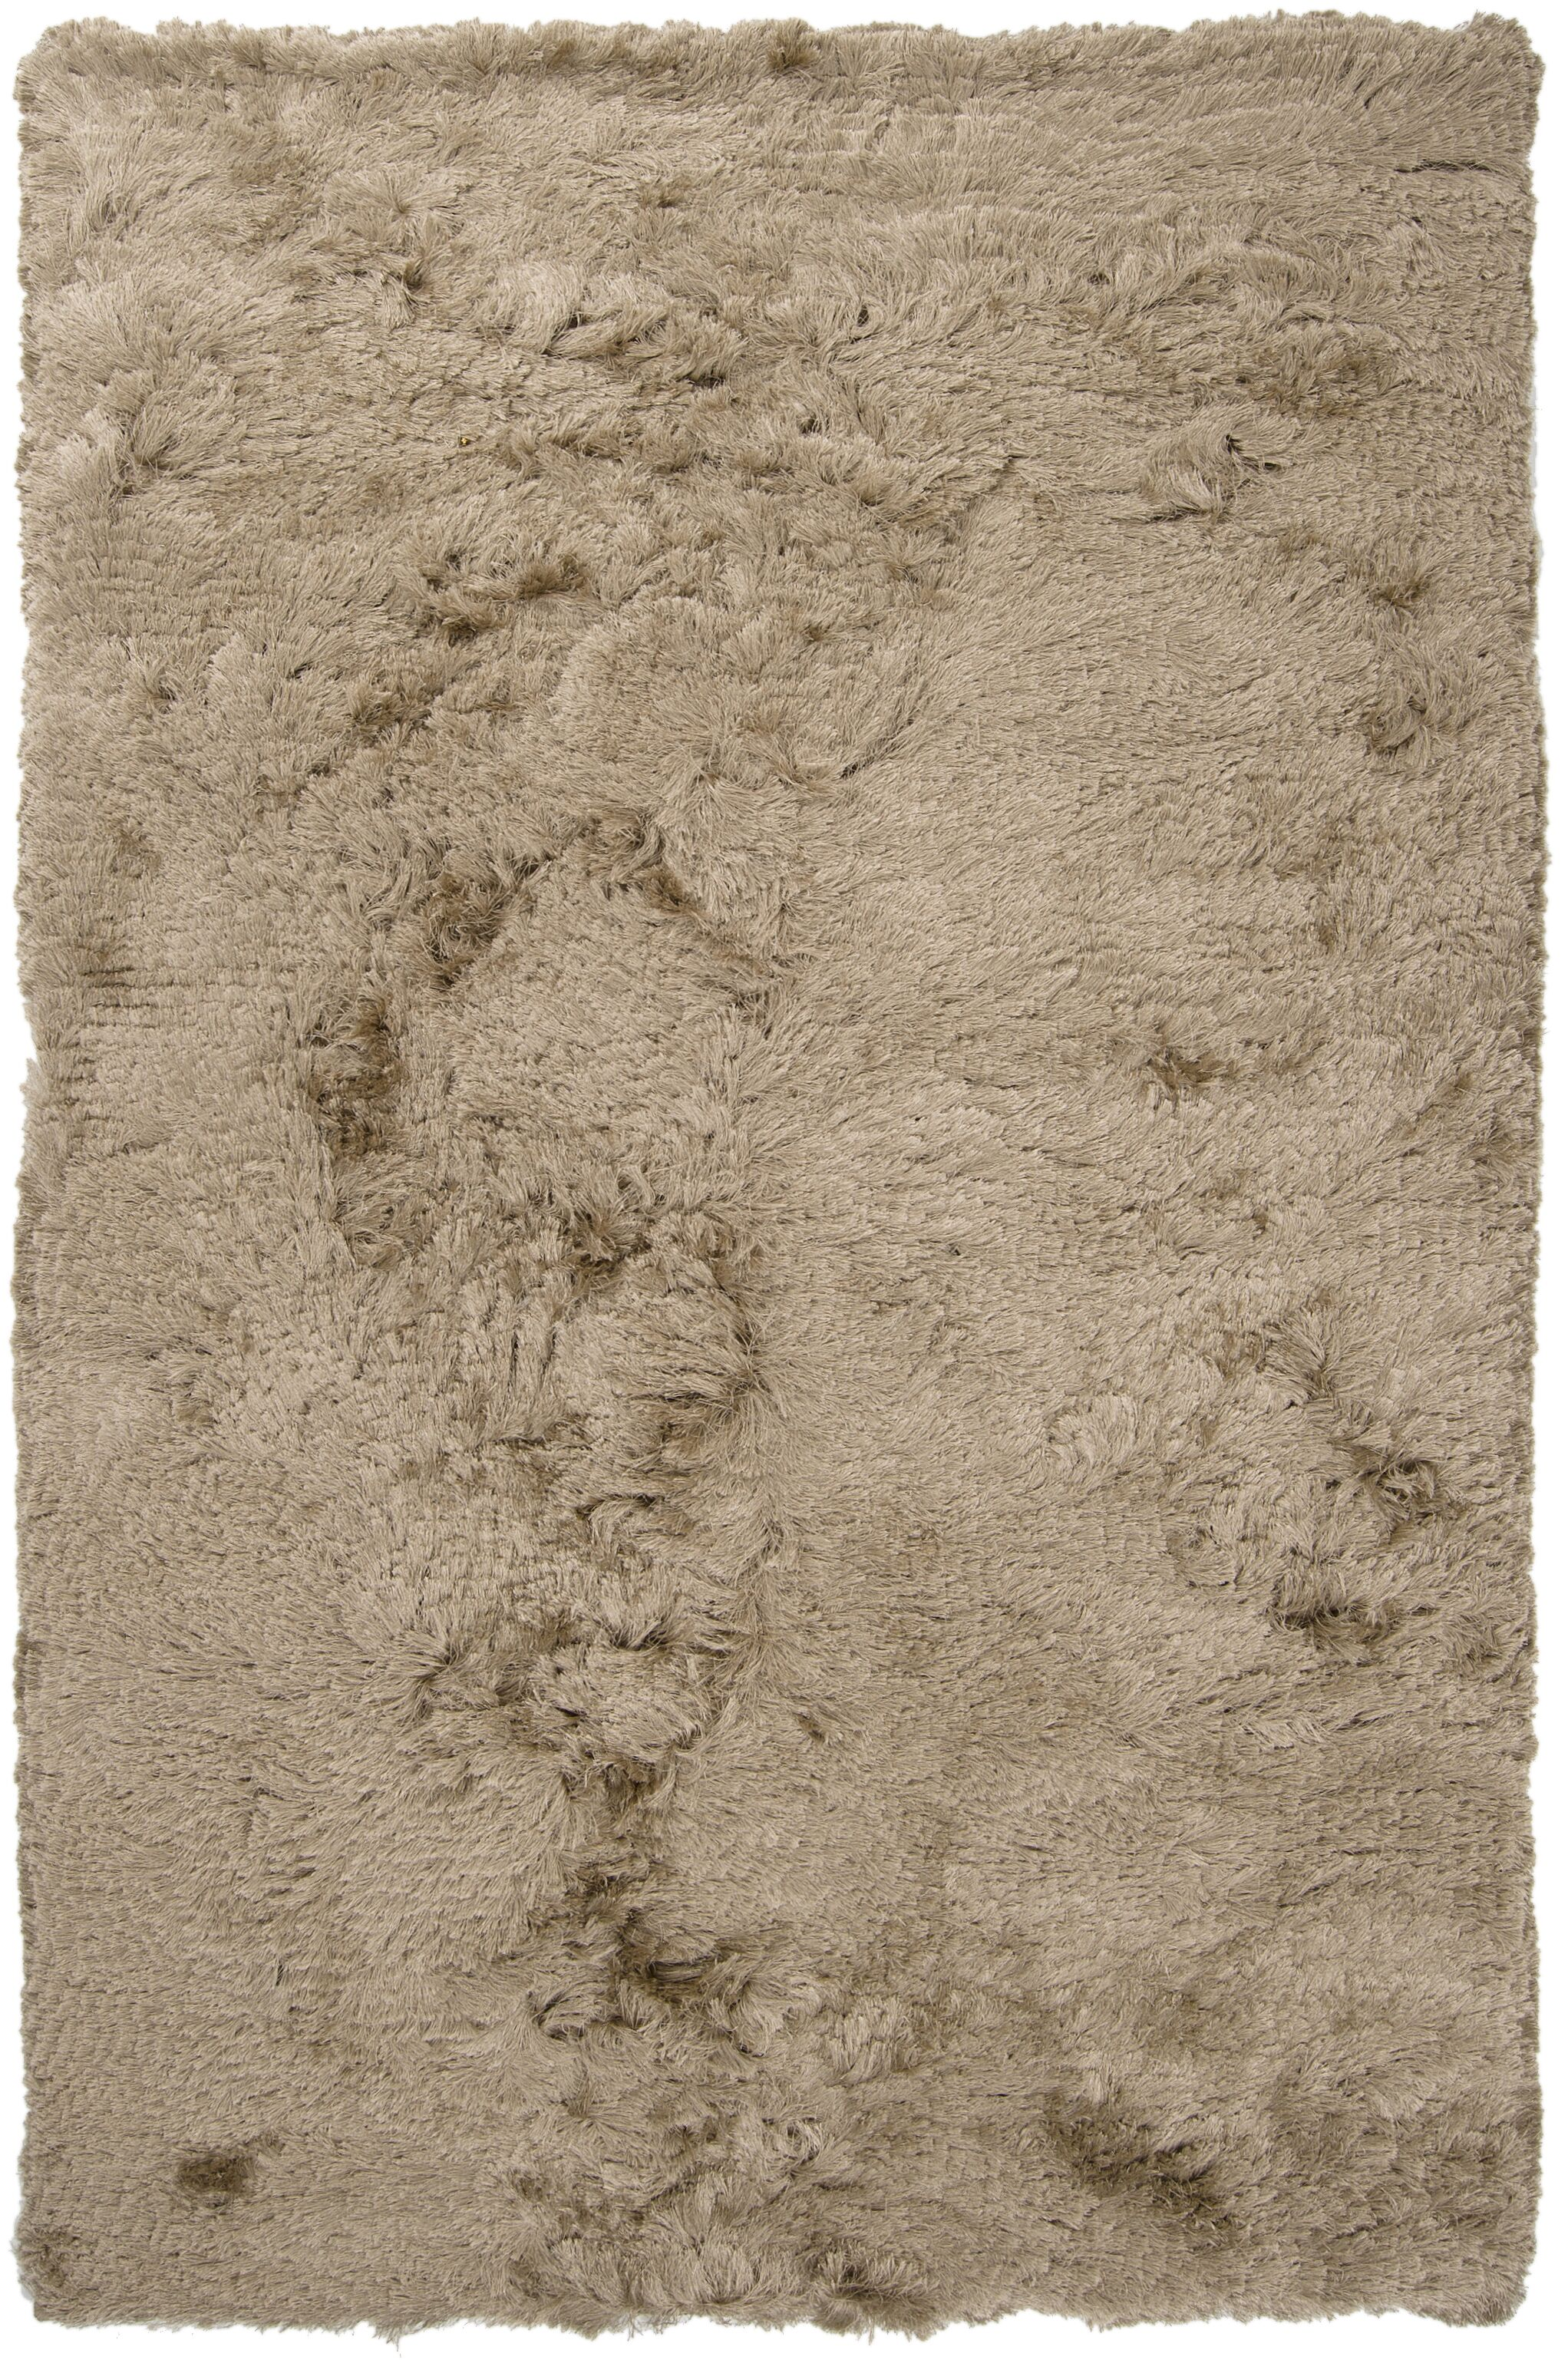 Whisper Gray Solid Area Rug Rug Size: Rectangle 2' x 3'